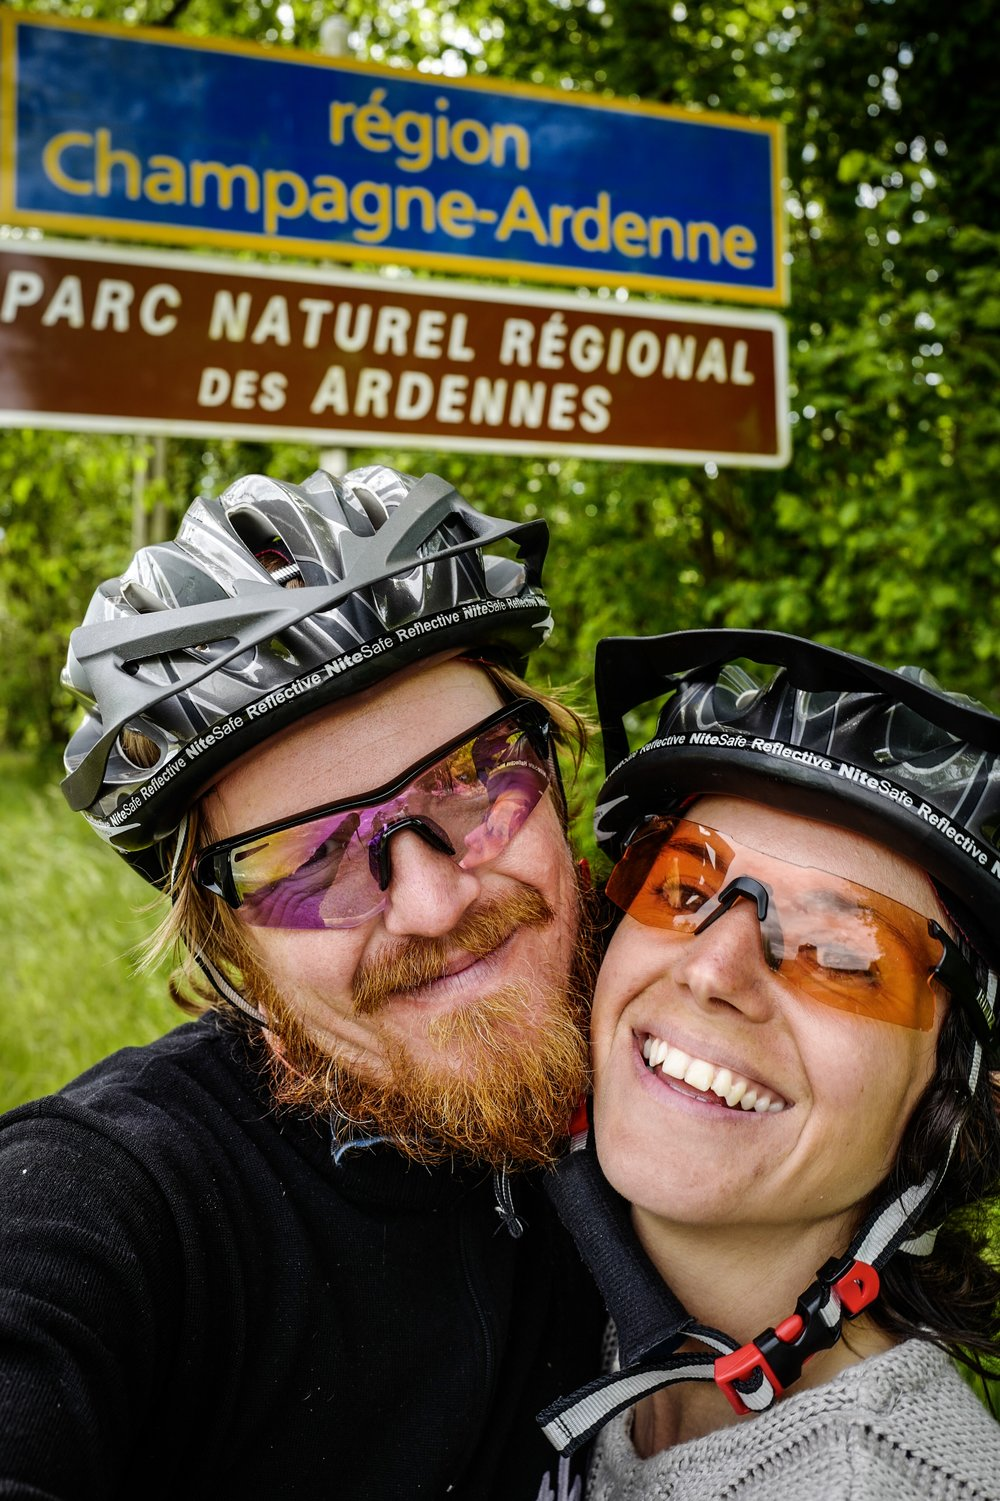 A local Norwegian newspaper wrote about us and our trip!